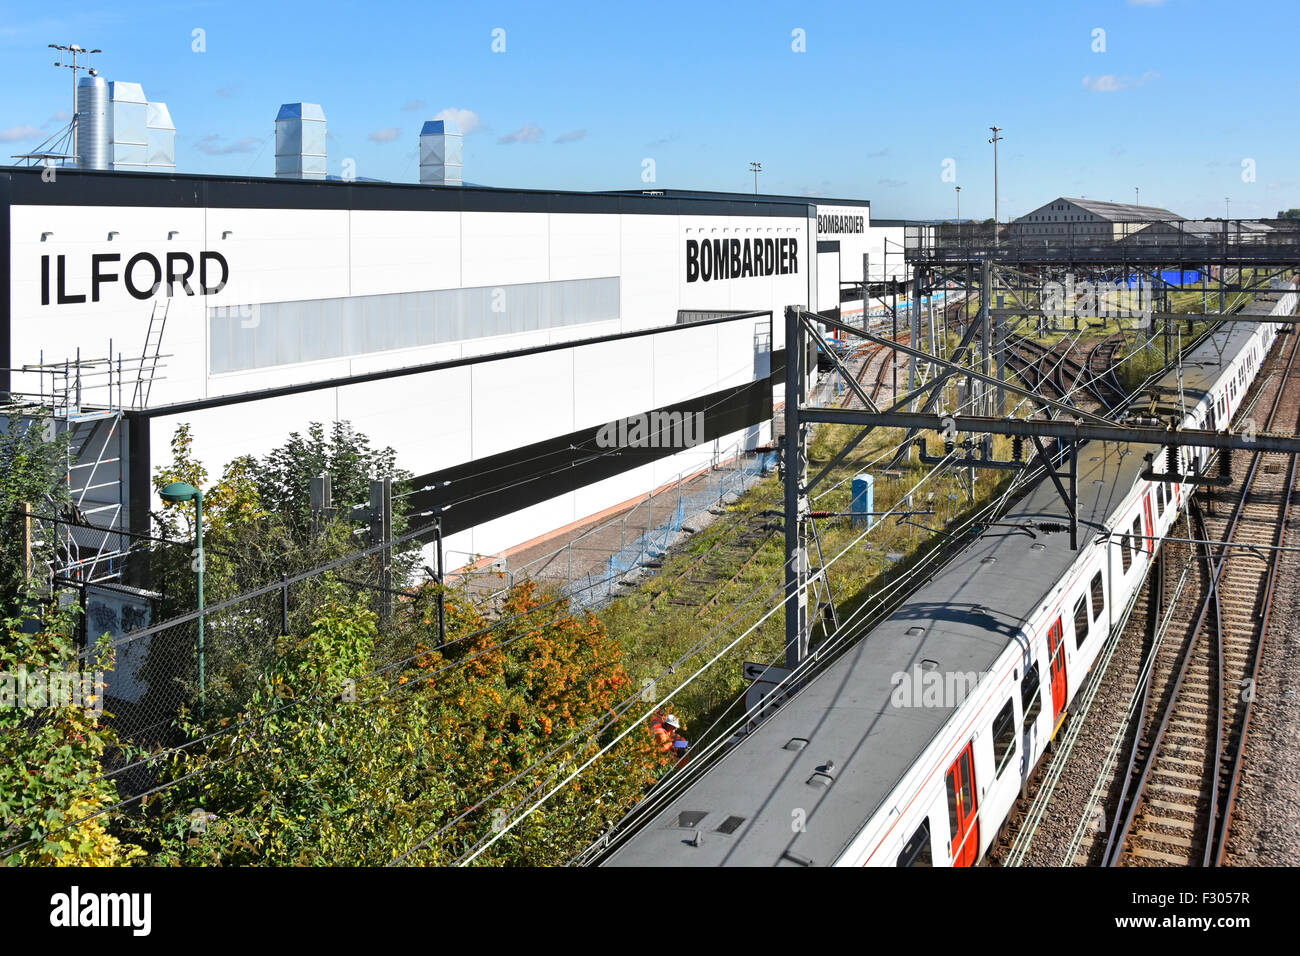 Crossrail rolling stock Ilford depot Elizabeth Line new train maintenance sheds at the Bombardier Transportation - Stock Image